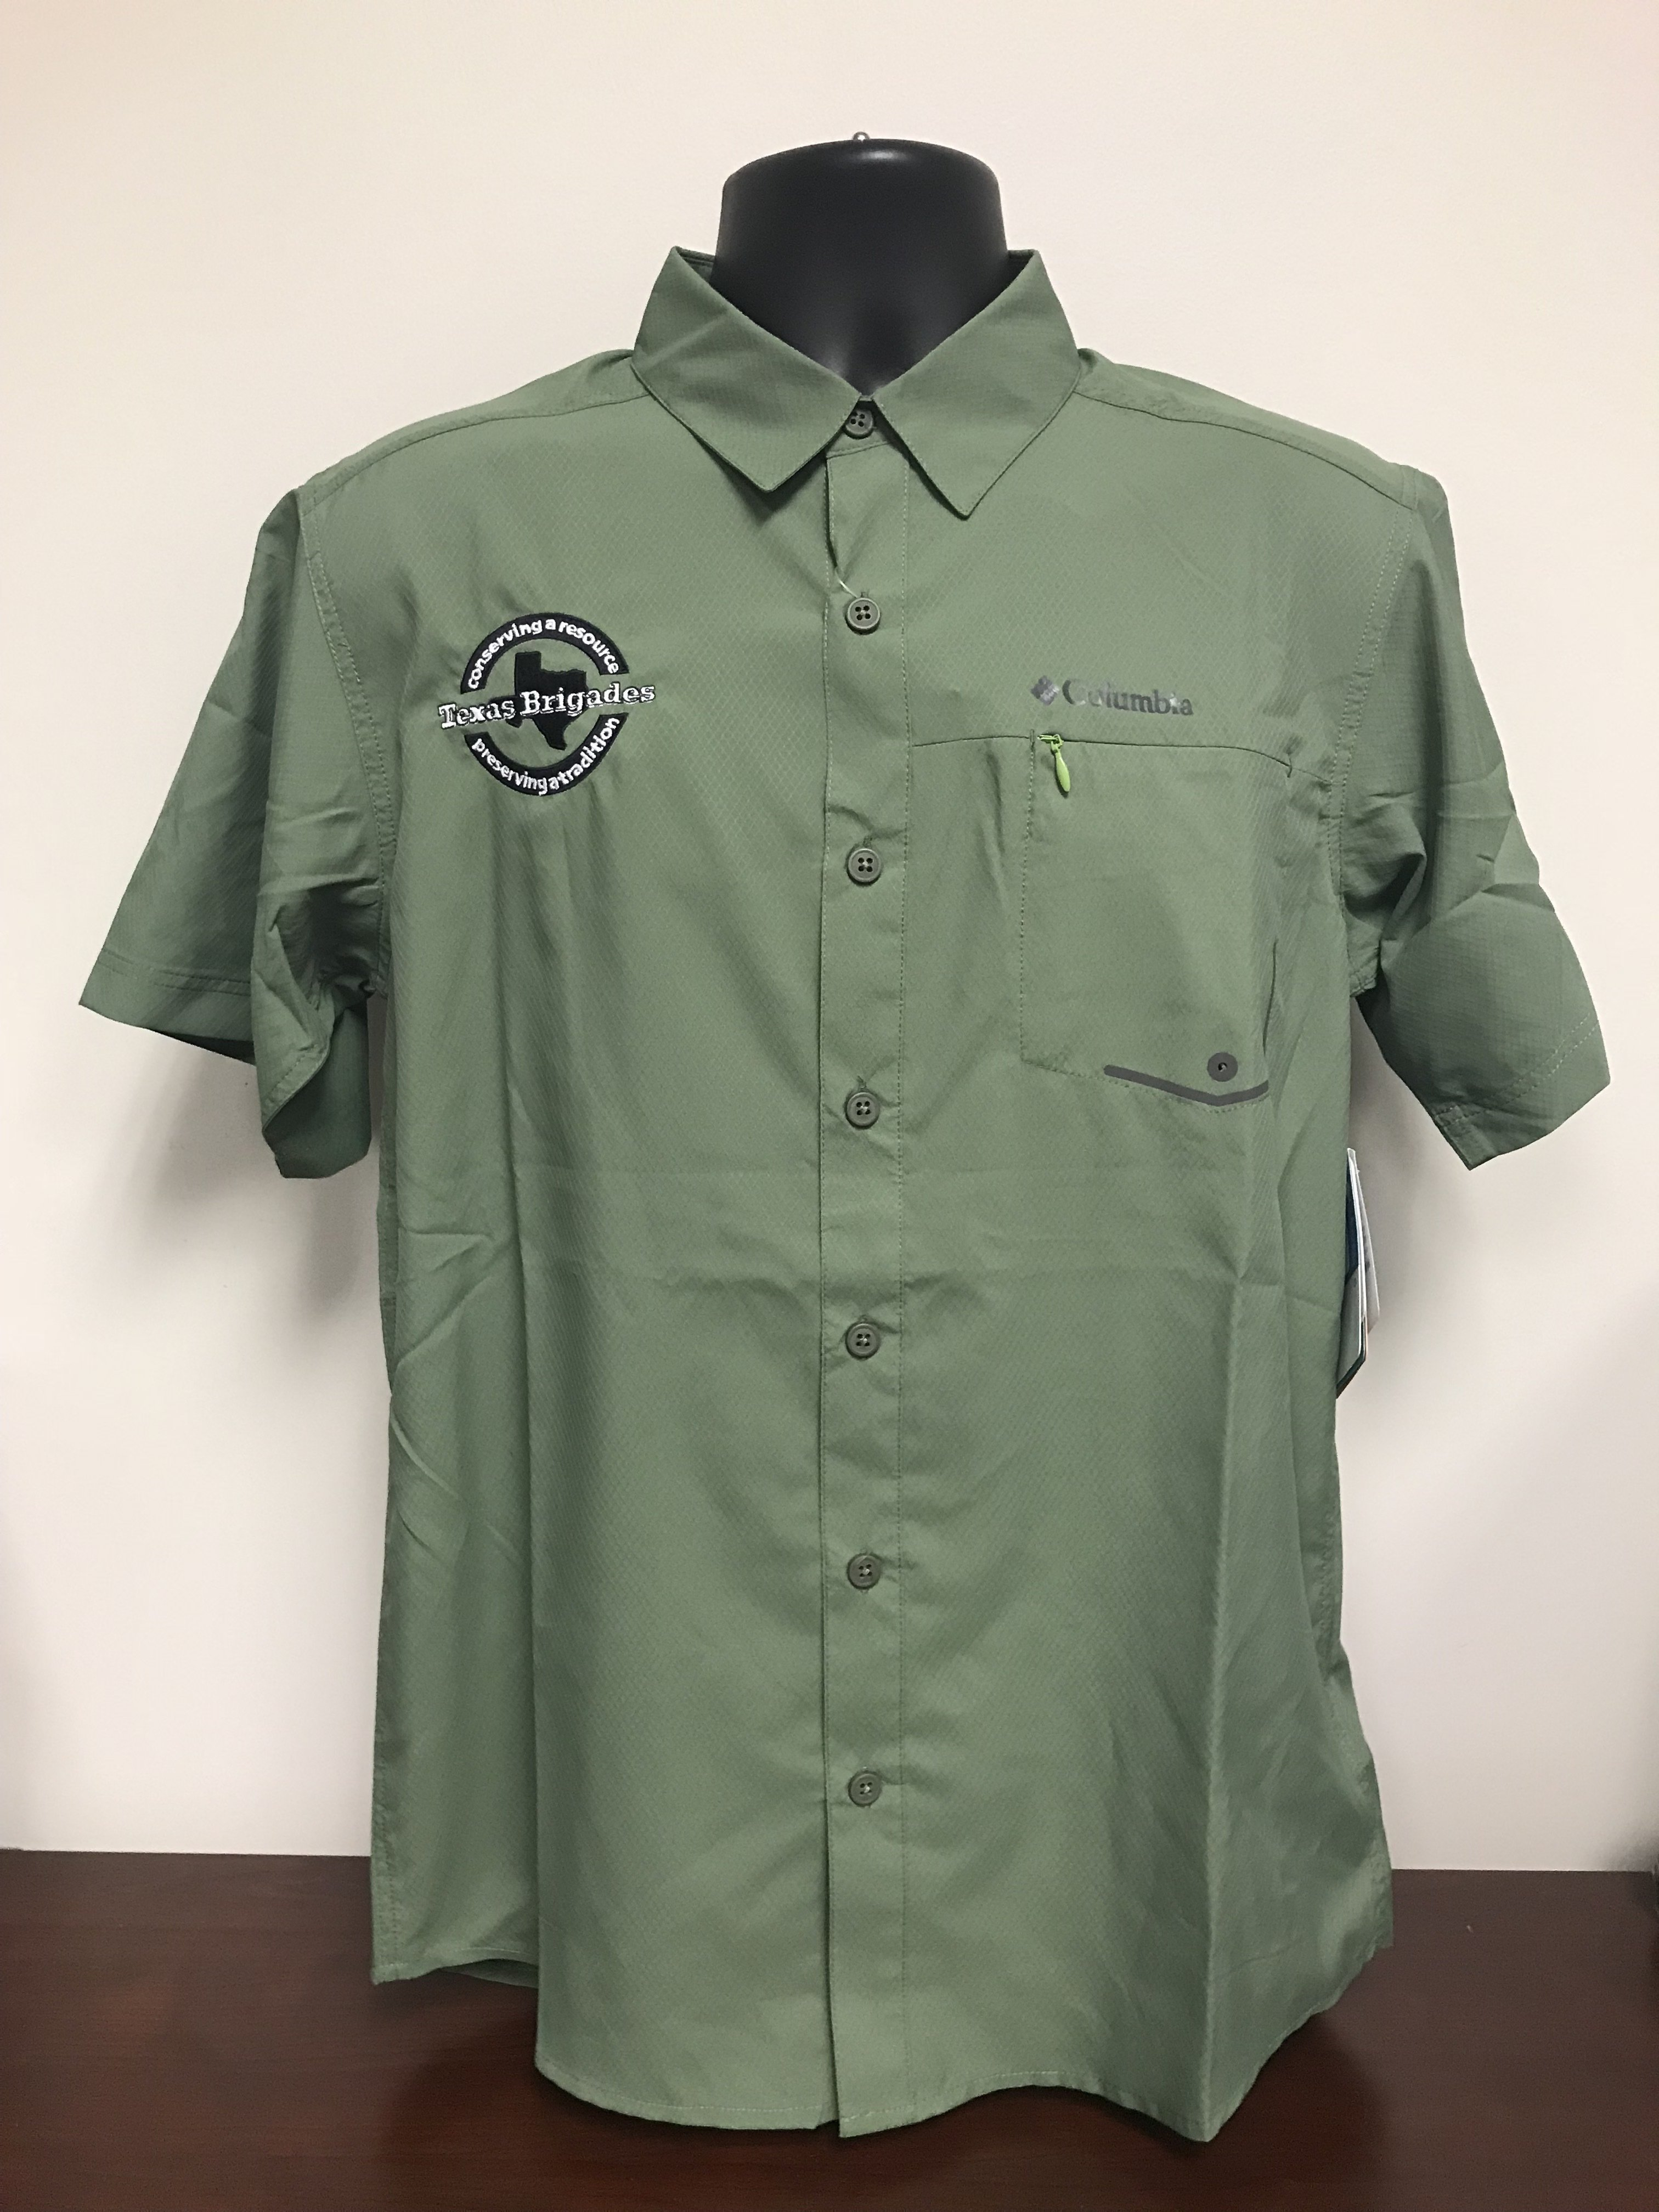 Men's Columbia Short Sleeve Shirt (LARGE) 00008